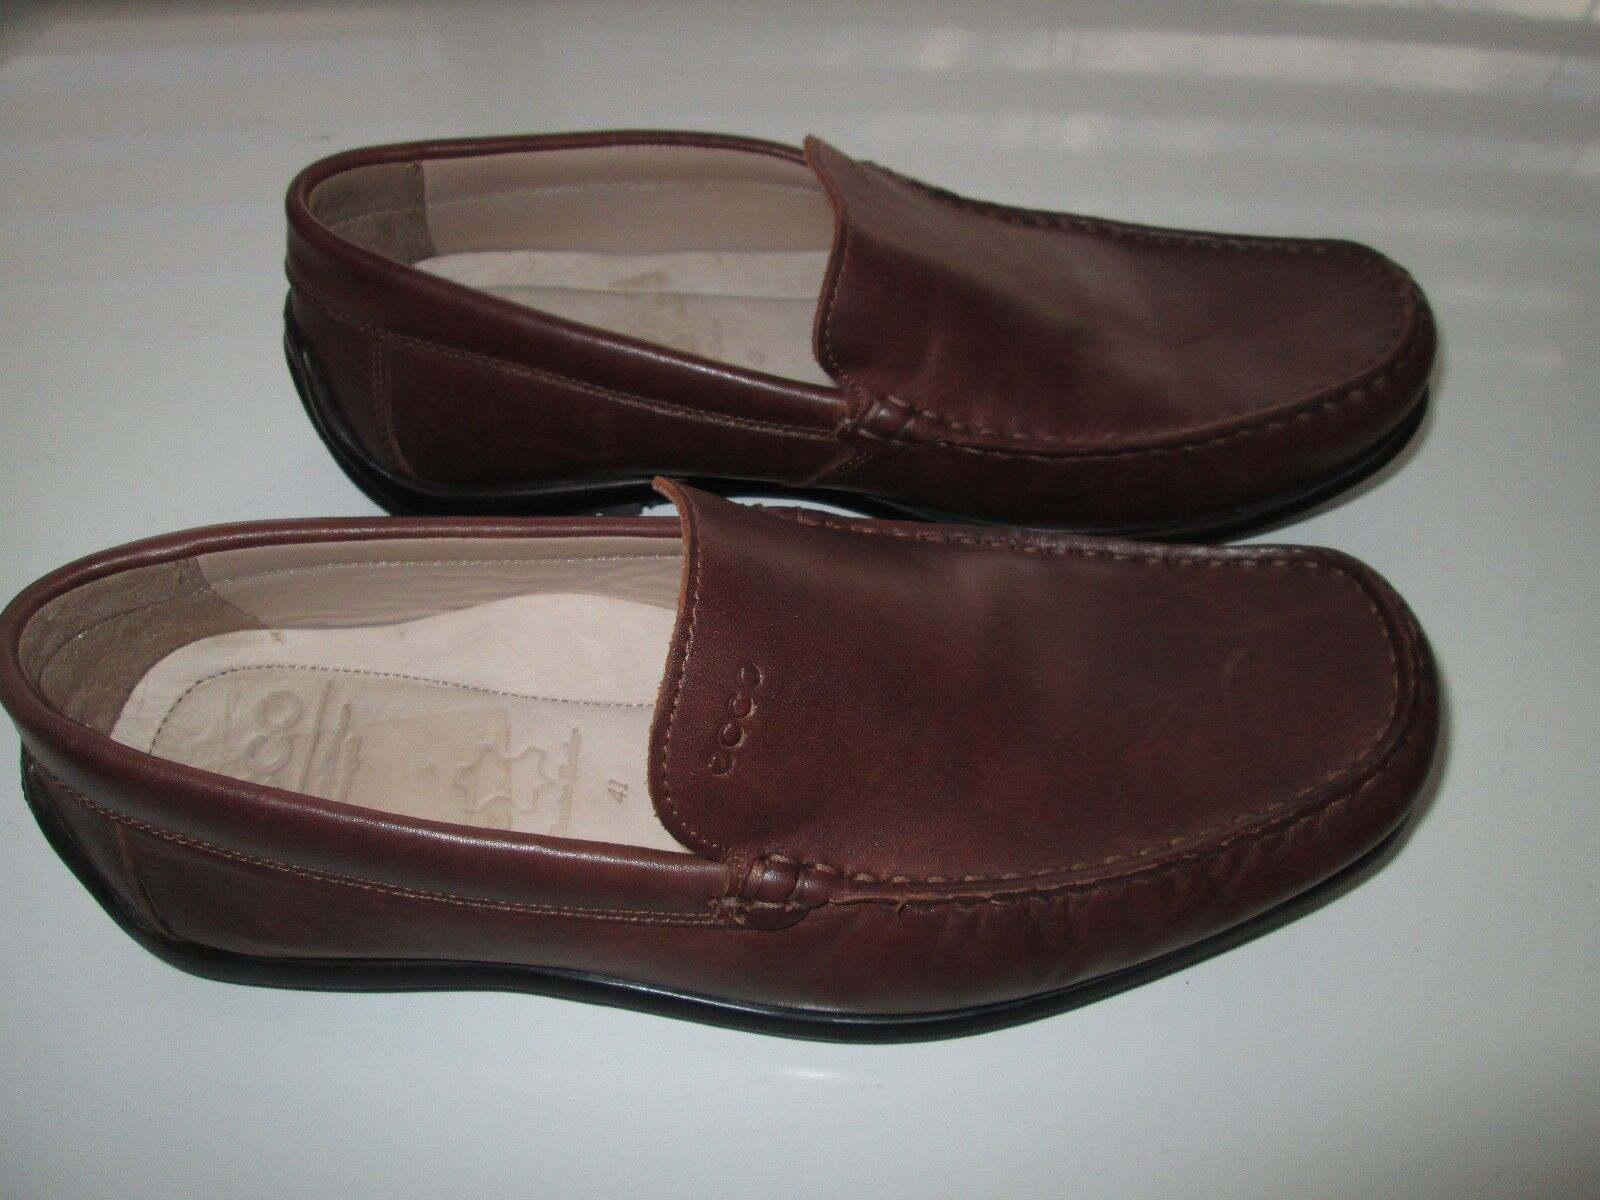 ECCO 59041 Amazing Leather Men's Loafer Slip-On Moccasin shoes Brown 8M UPC114